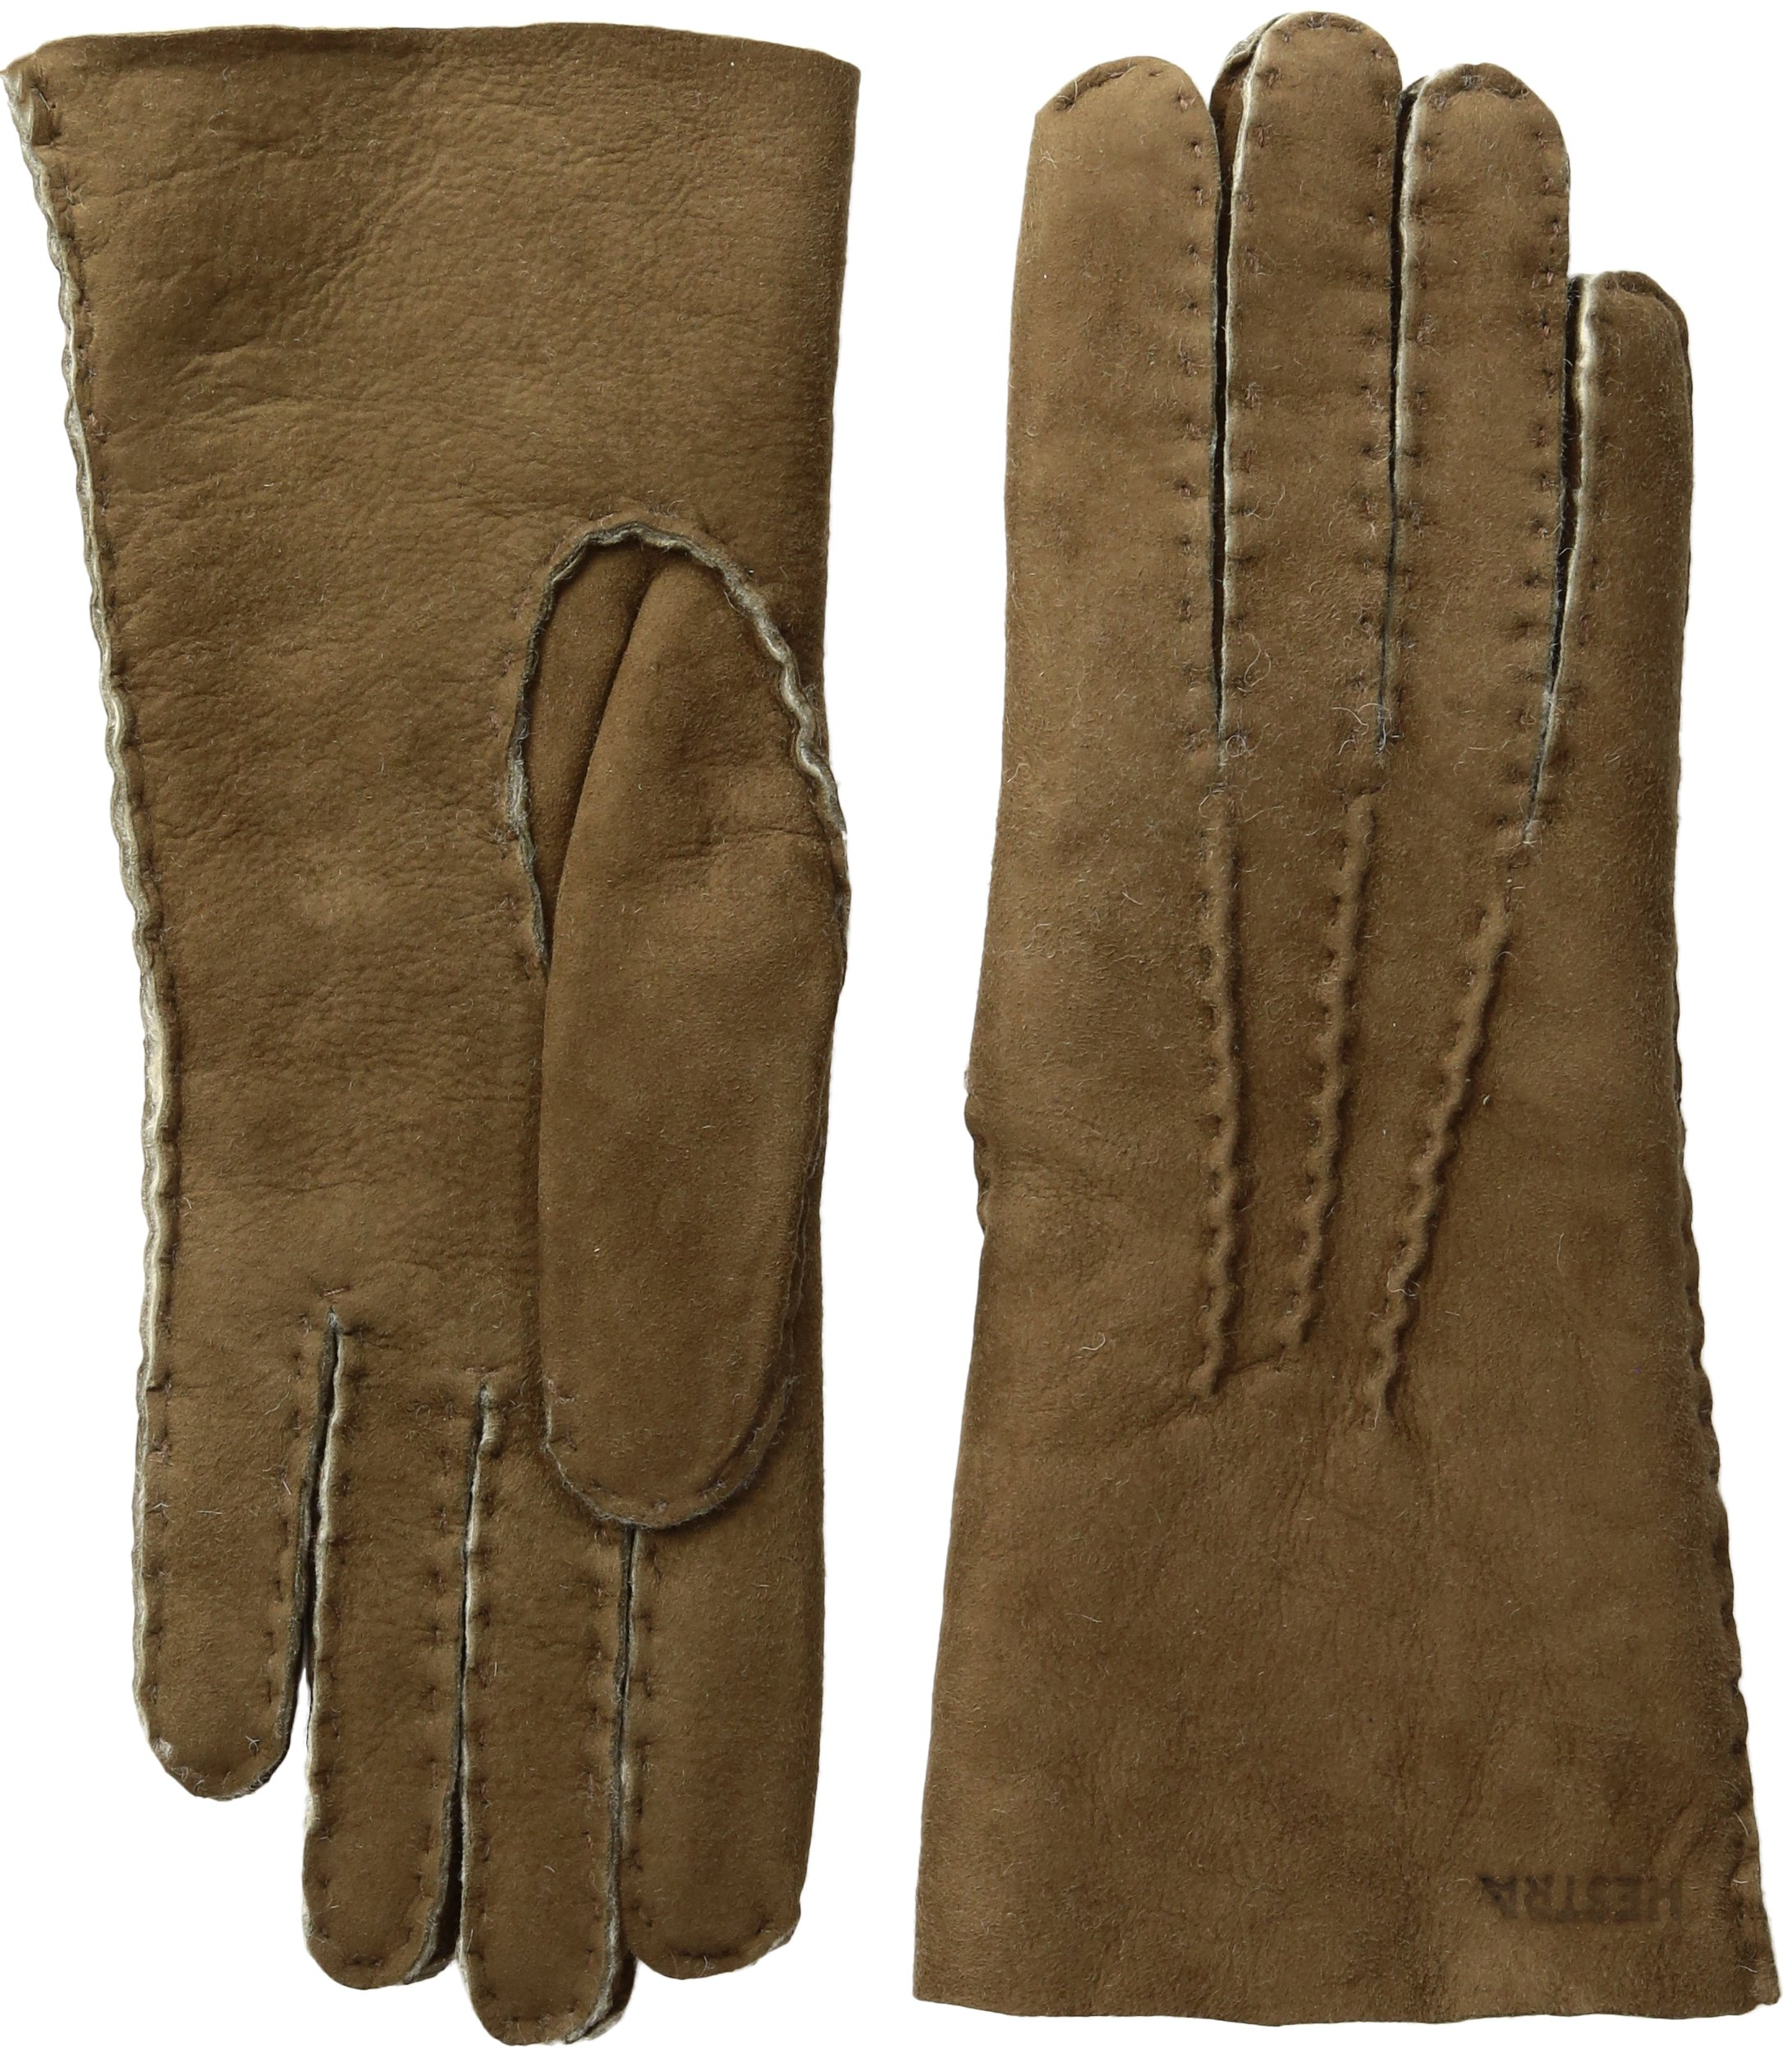 Hestra Women's Sheepskin Leather Dress Glove,Beige,8 by Hestra